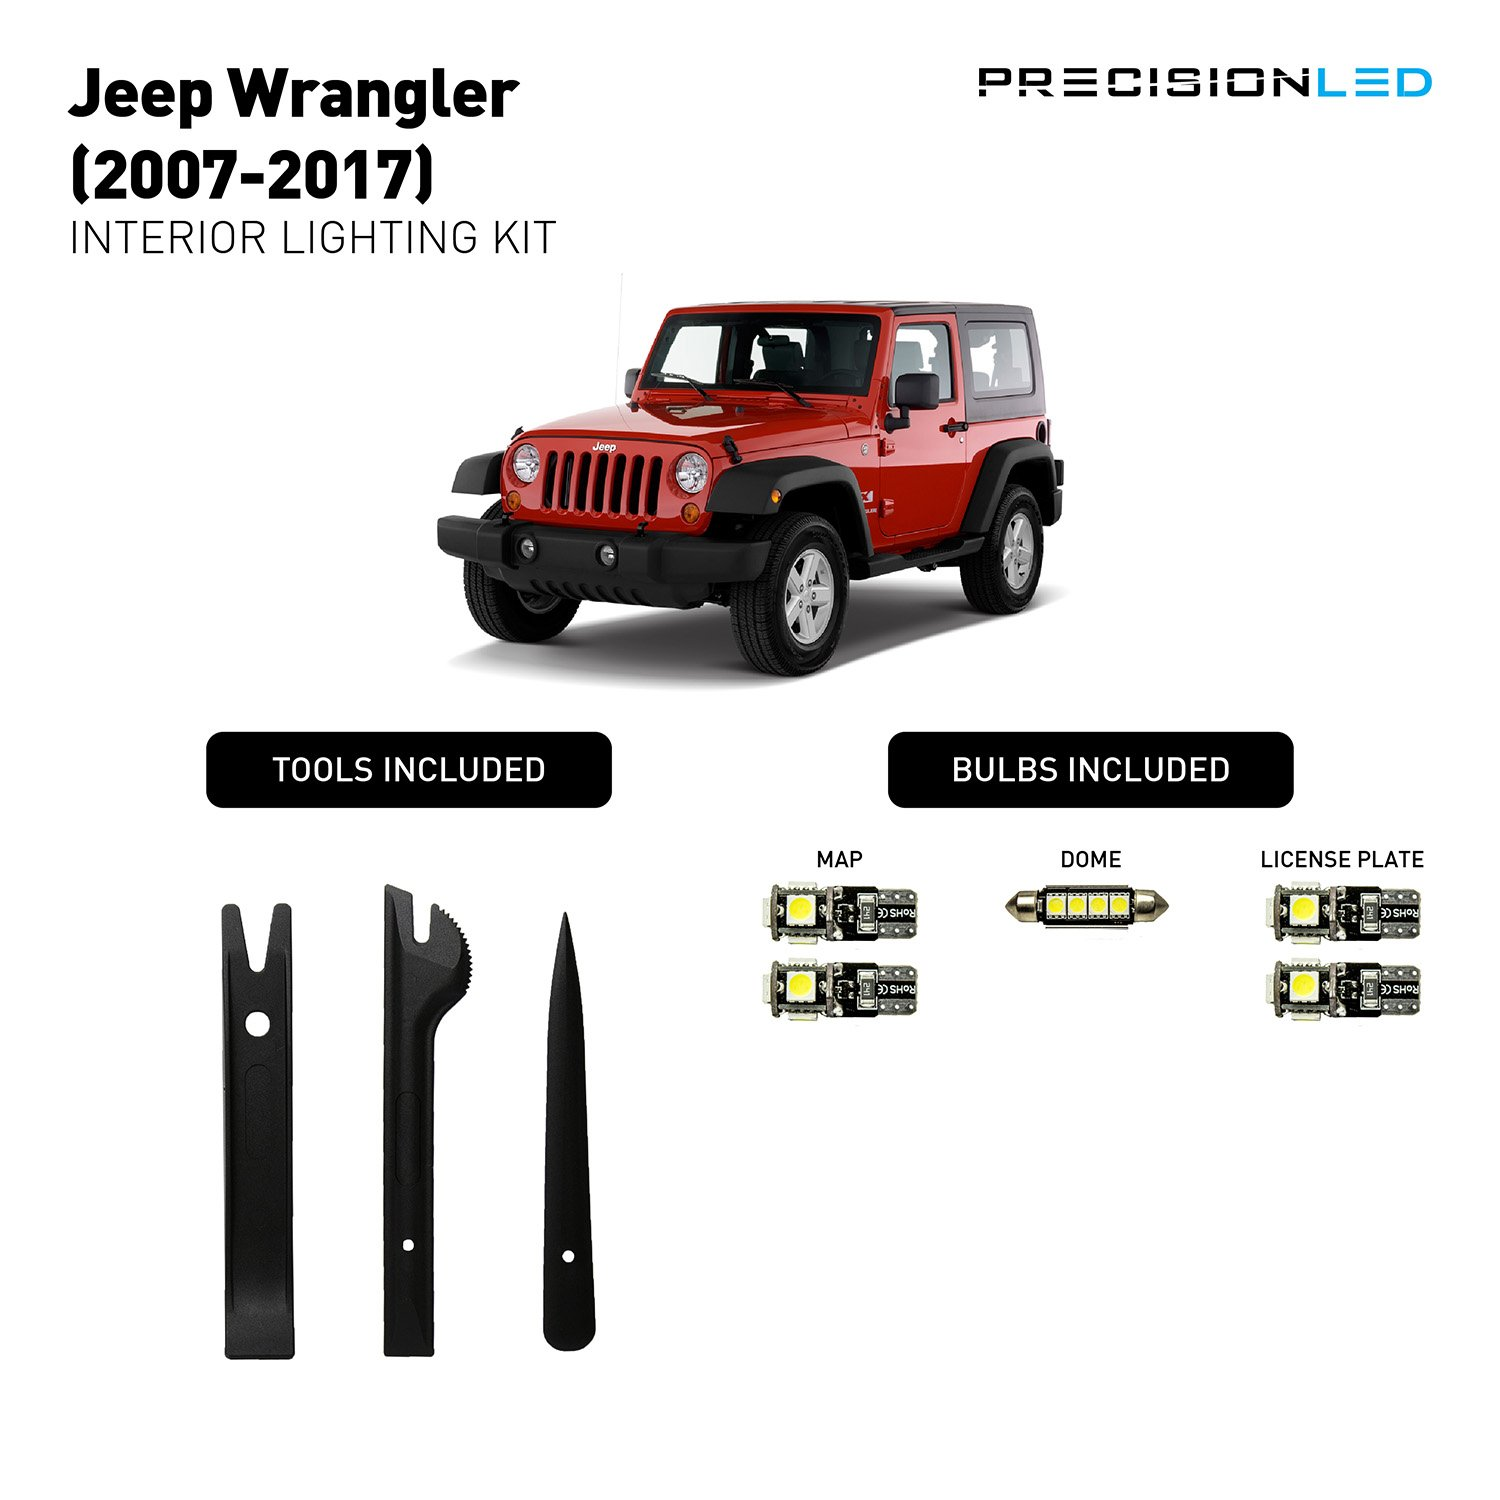 Amazon Precision LED Jeep Wrangler Accessories JK LED Interior